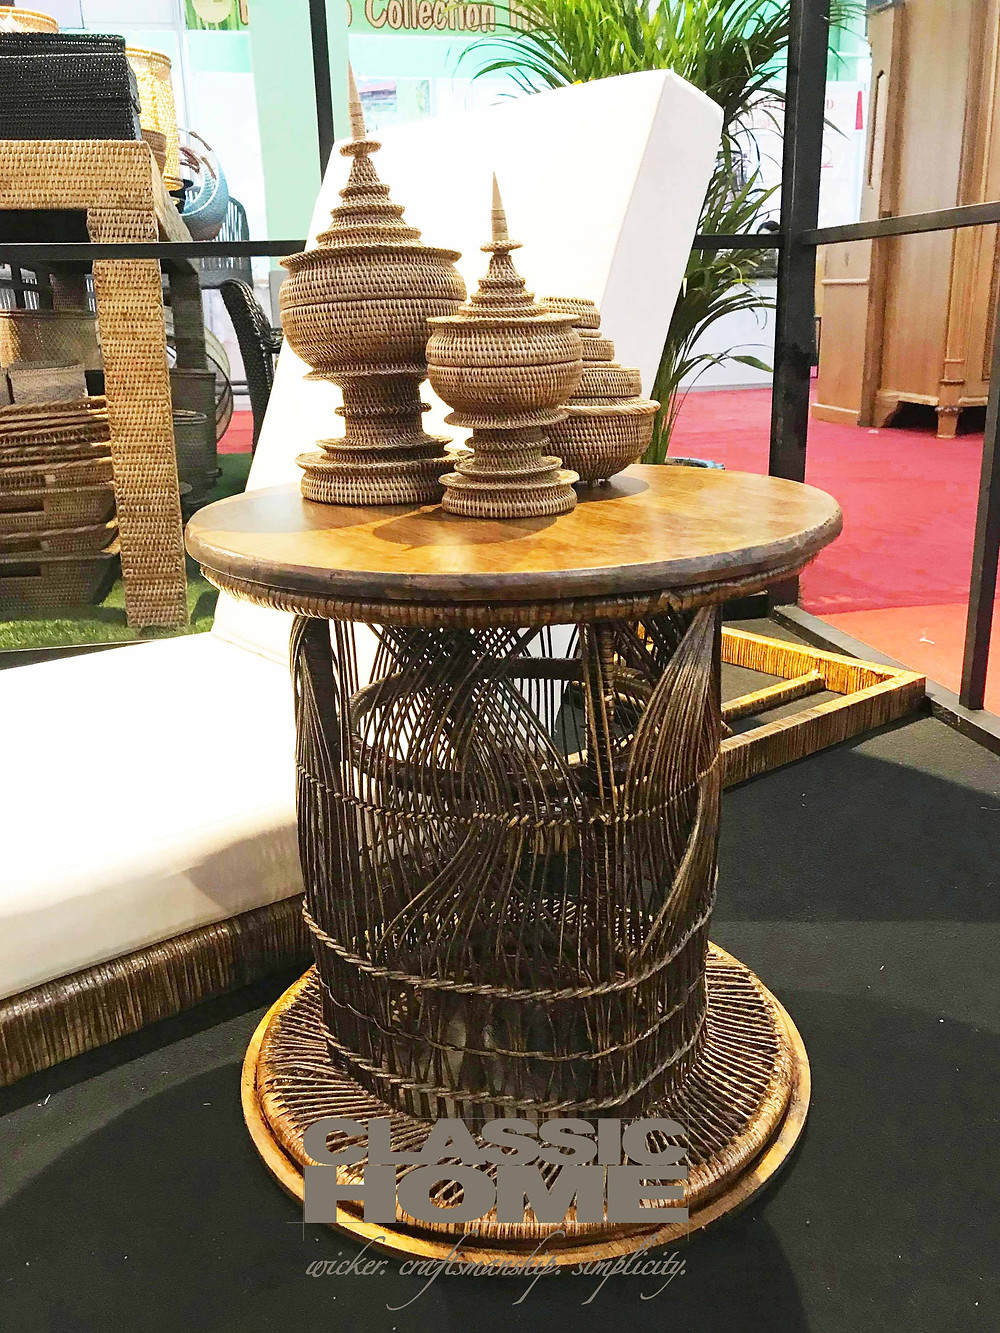 hand-made rattan stool or table by classic home myanmar